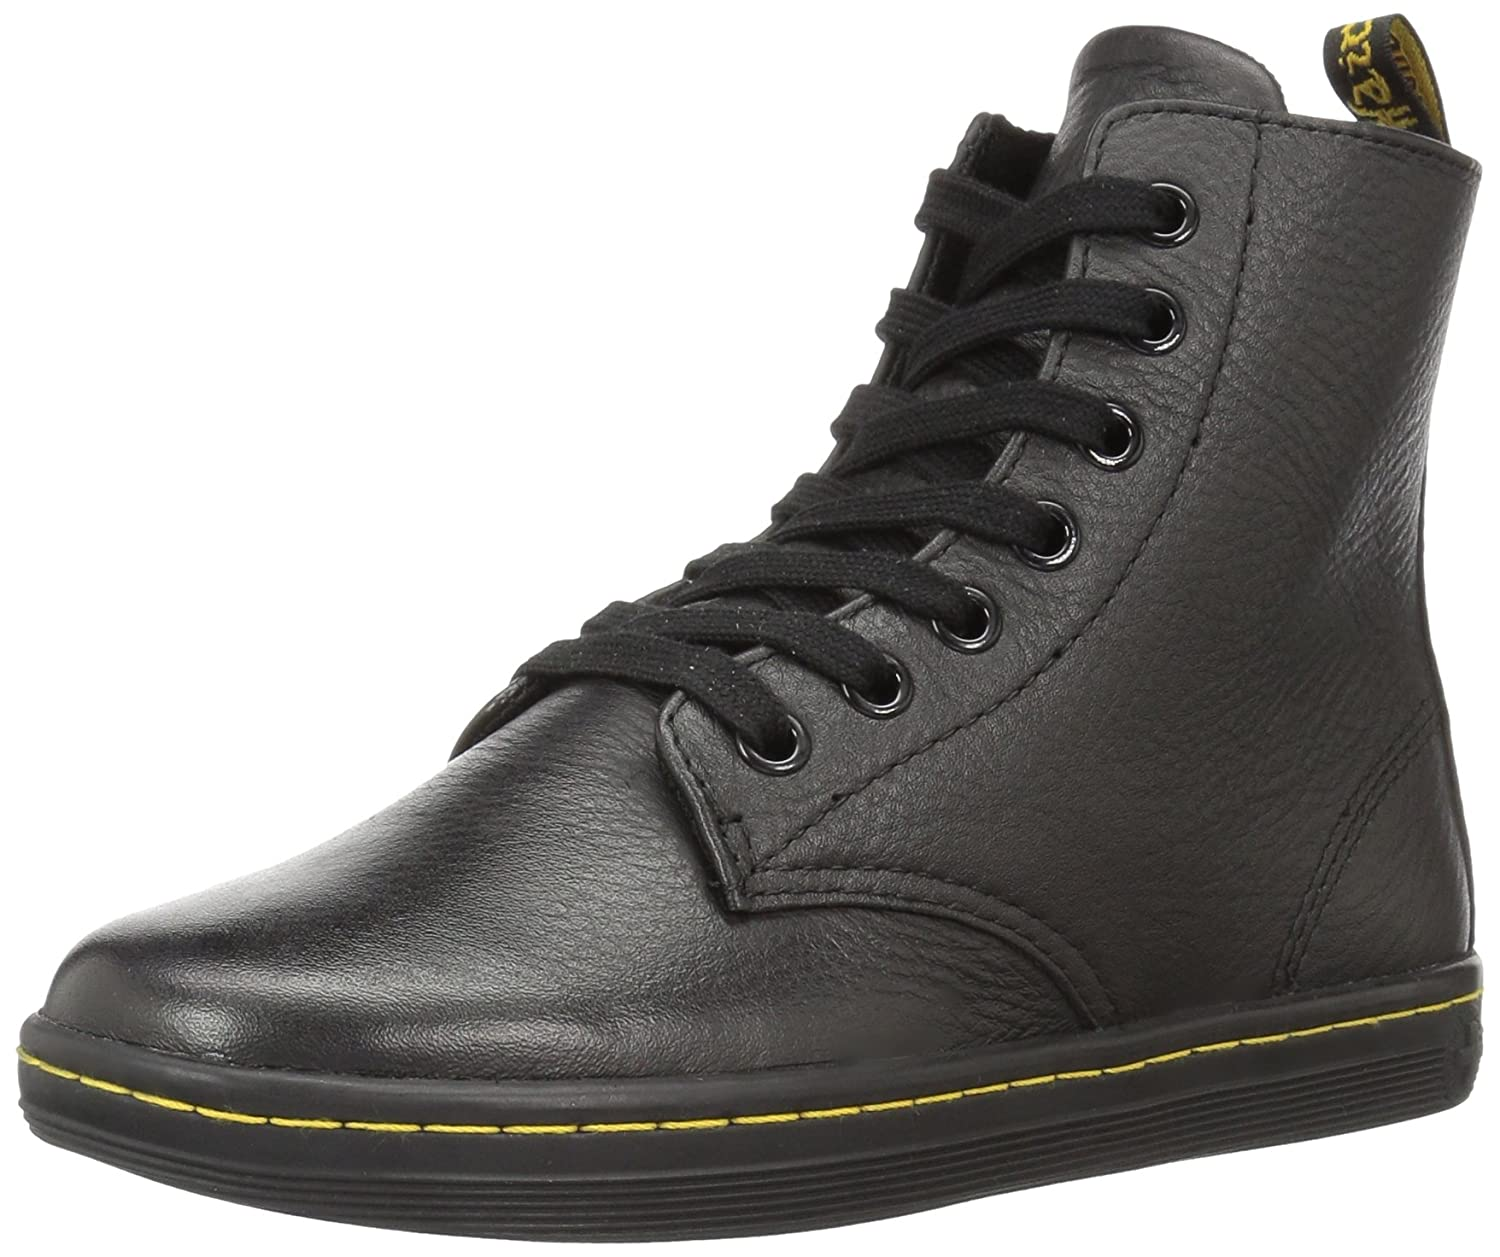 Dr.Martens Leyton 7 Eyelet Game On Black Womens Boots36 EU |Negro